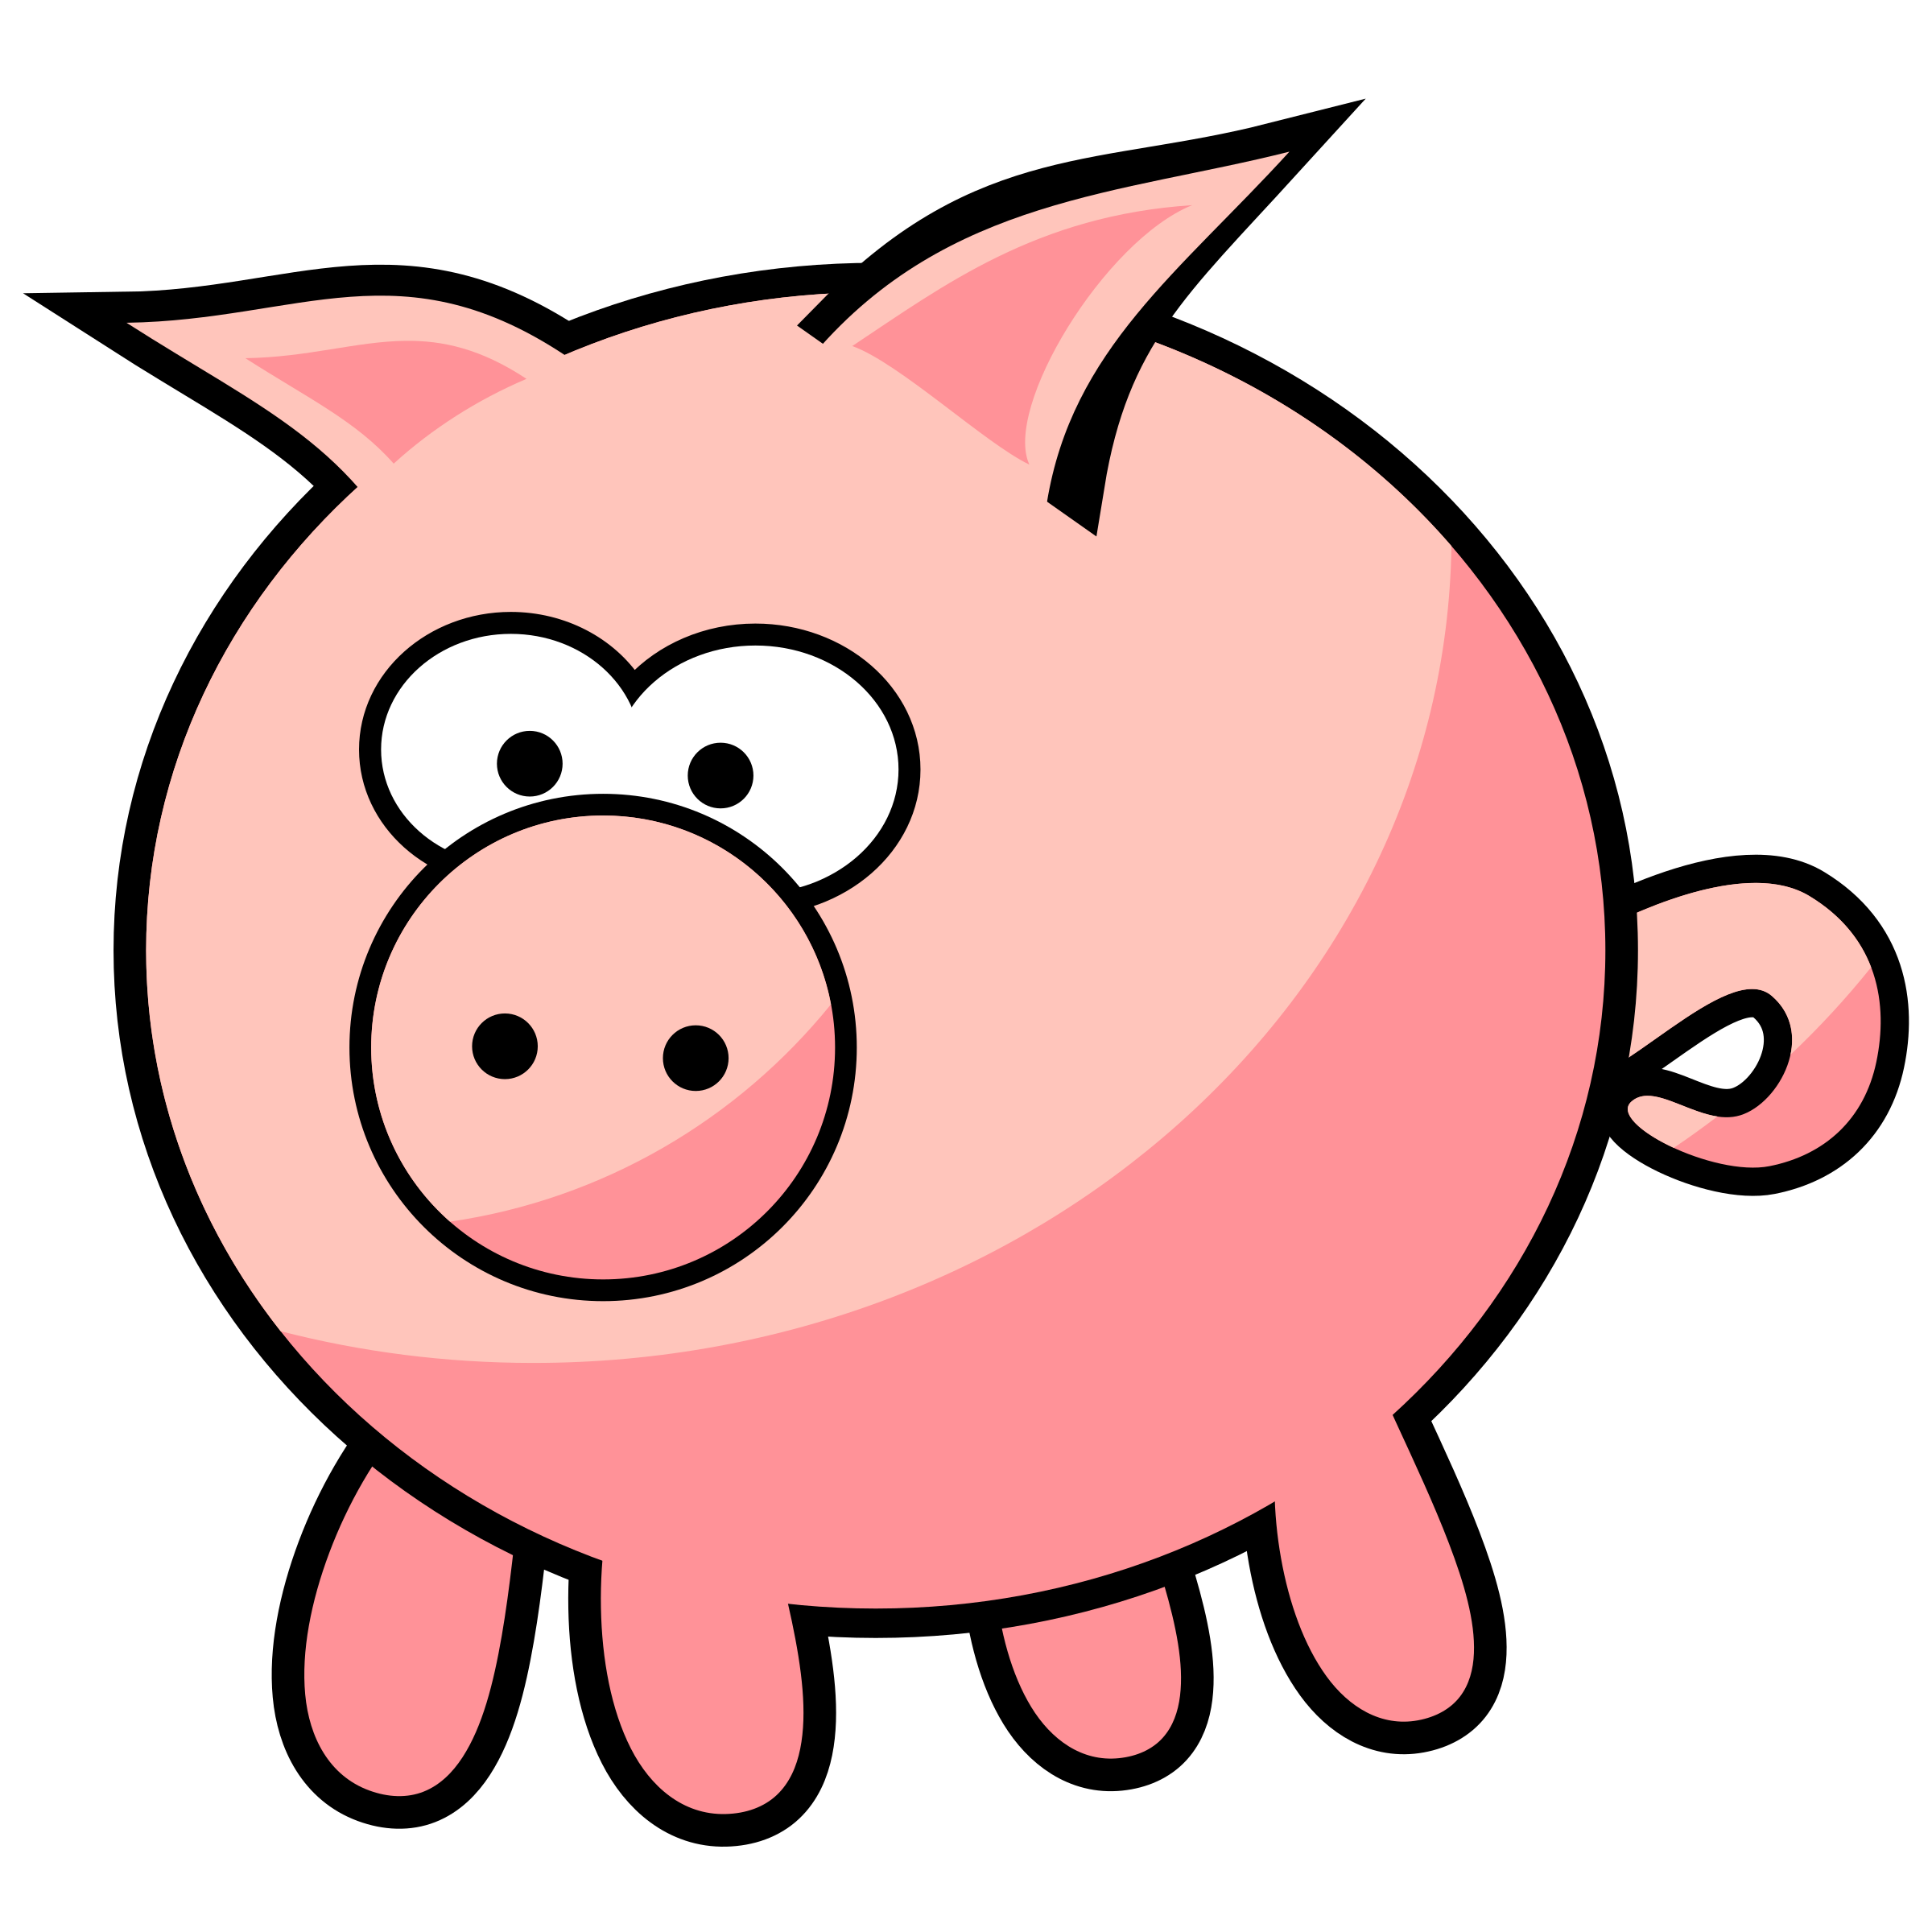 Cartoon Pig Pig Cartoon Cute Baby Pigs Cute Pigs